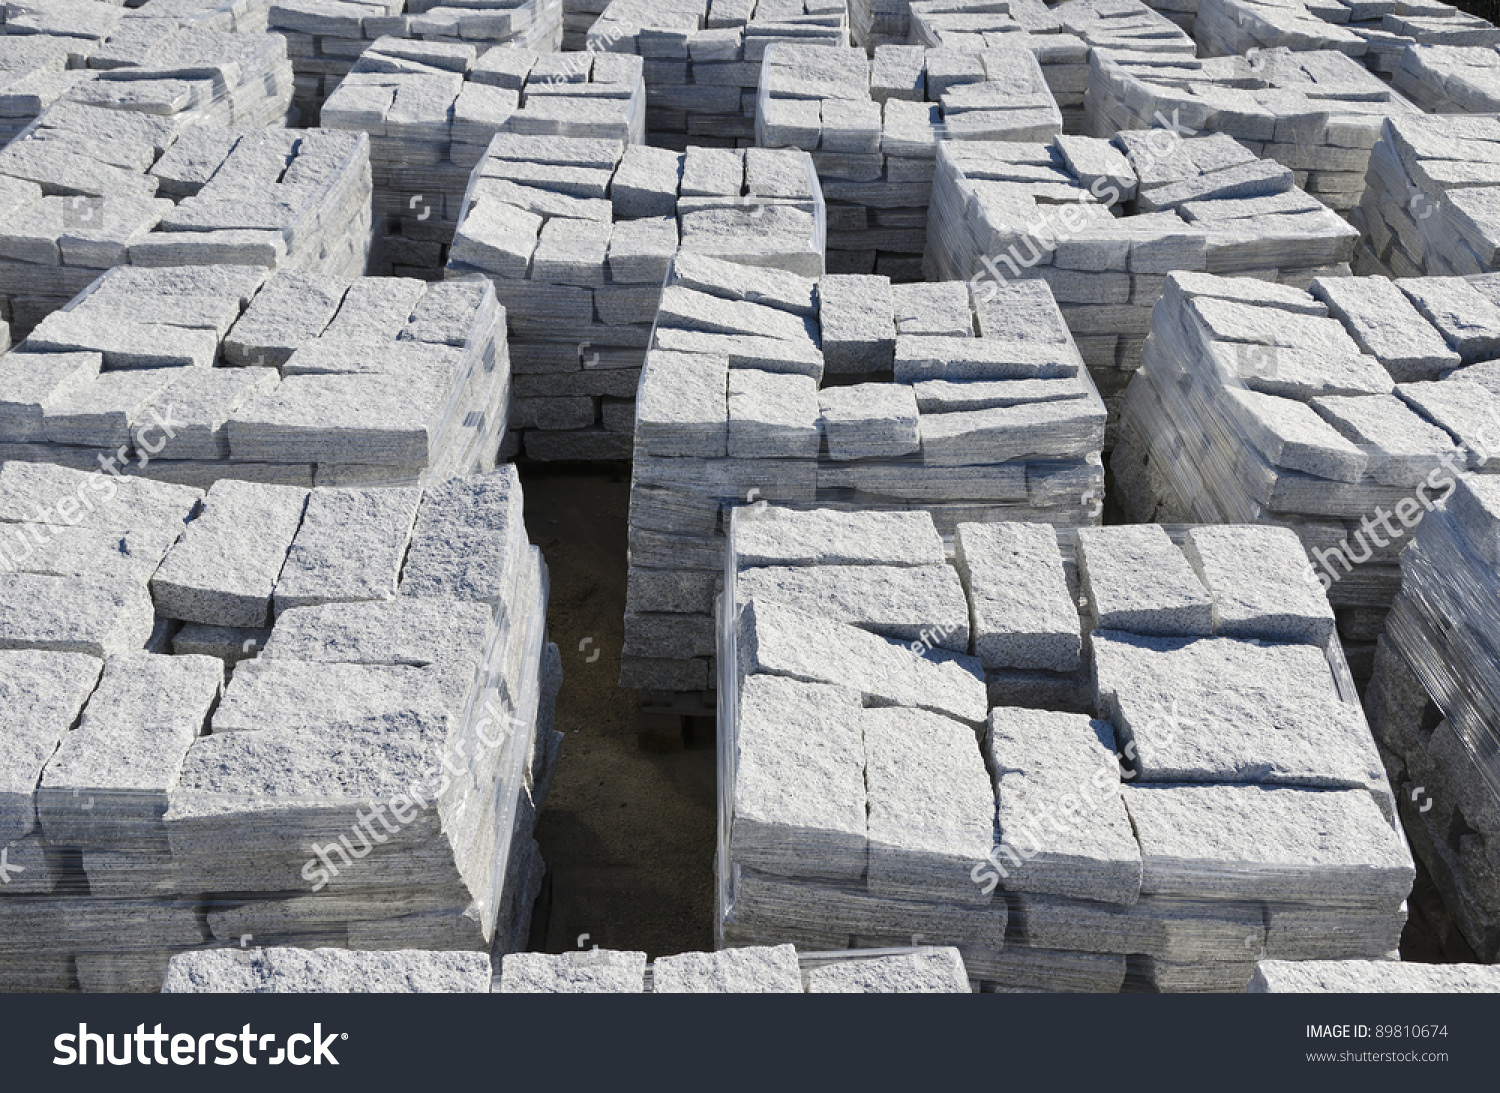 Blocks Marble Auction : Granite blocks ready for sale stock photo